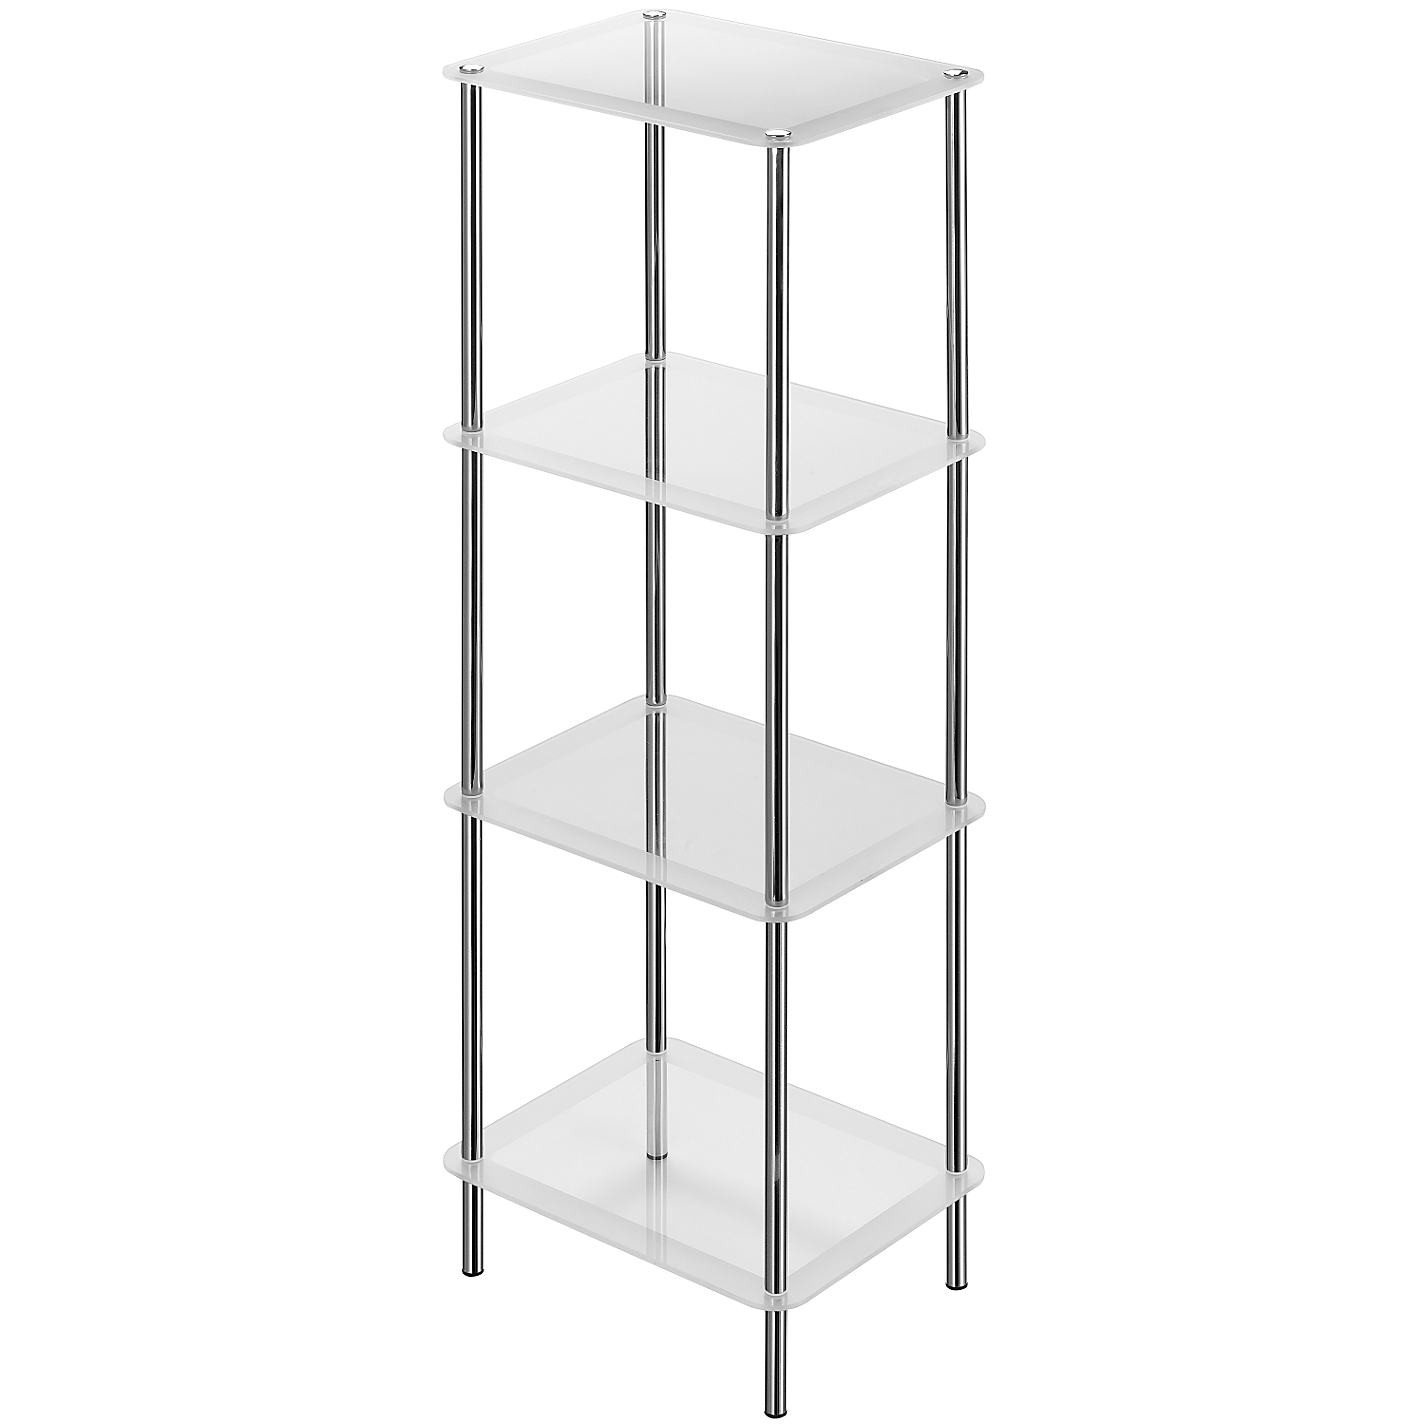 Glass shelving bathroom - Bathroom Free Standing Shelving Units Bathroom Design Inside Free Standing Glass Shelves 3 Of